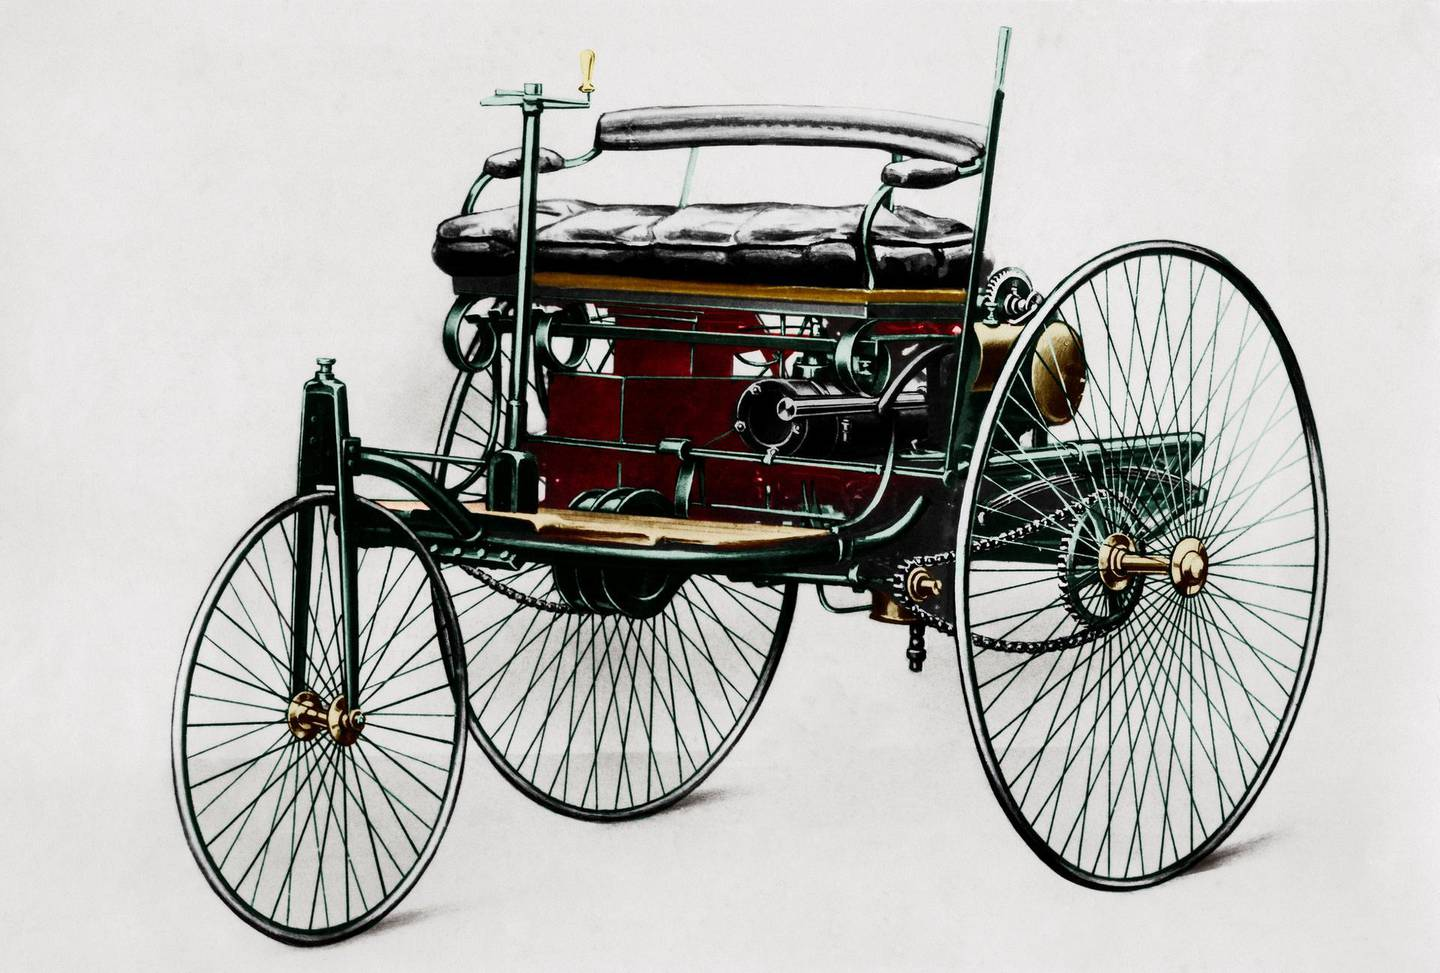 (Eingeschränkte Rechte für bestimmte redaktionelle Kunden in Deutschland. Limited rights for specific editorial clients in Germany.) Germany - Benz Patent Motorwagen 1885. The first petrol-car, a three-wheels vehicle with combustion motor and electric detonator. - 1885 Digitally colorized. Original: image no 00445524Vintage property of ullstein bild (Photo by ullstein bild/ullstein bild via Getty Images) *** Local Caption *** 01116986